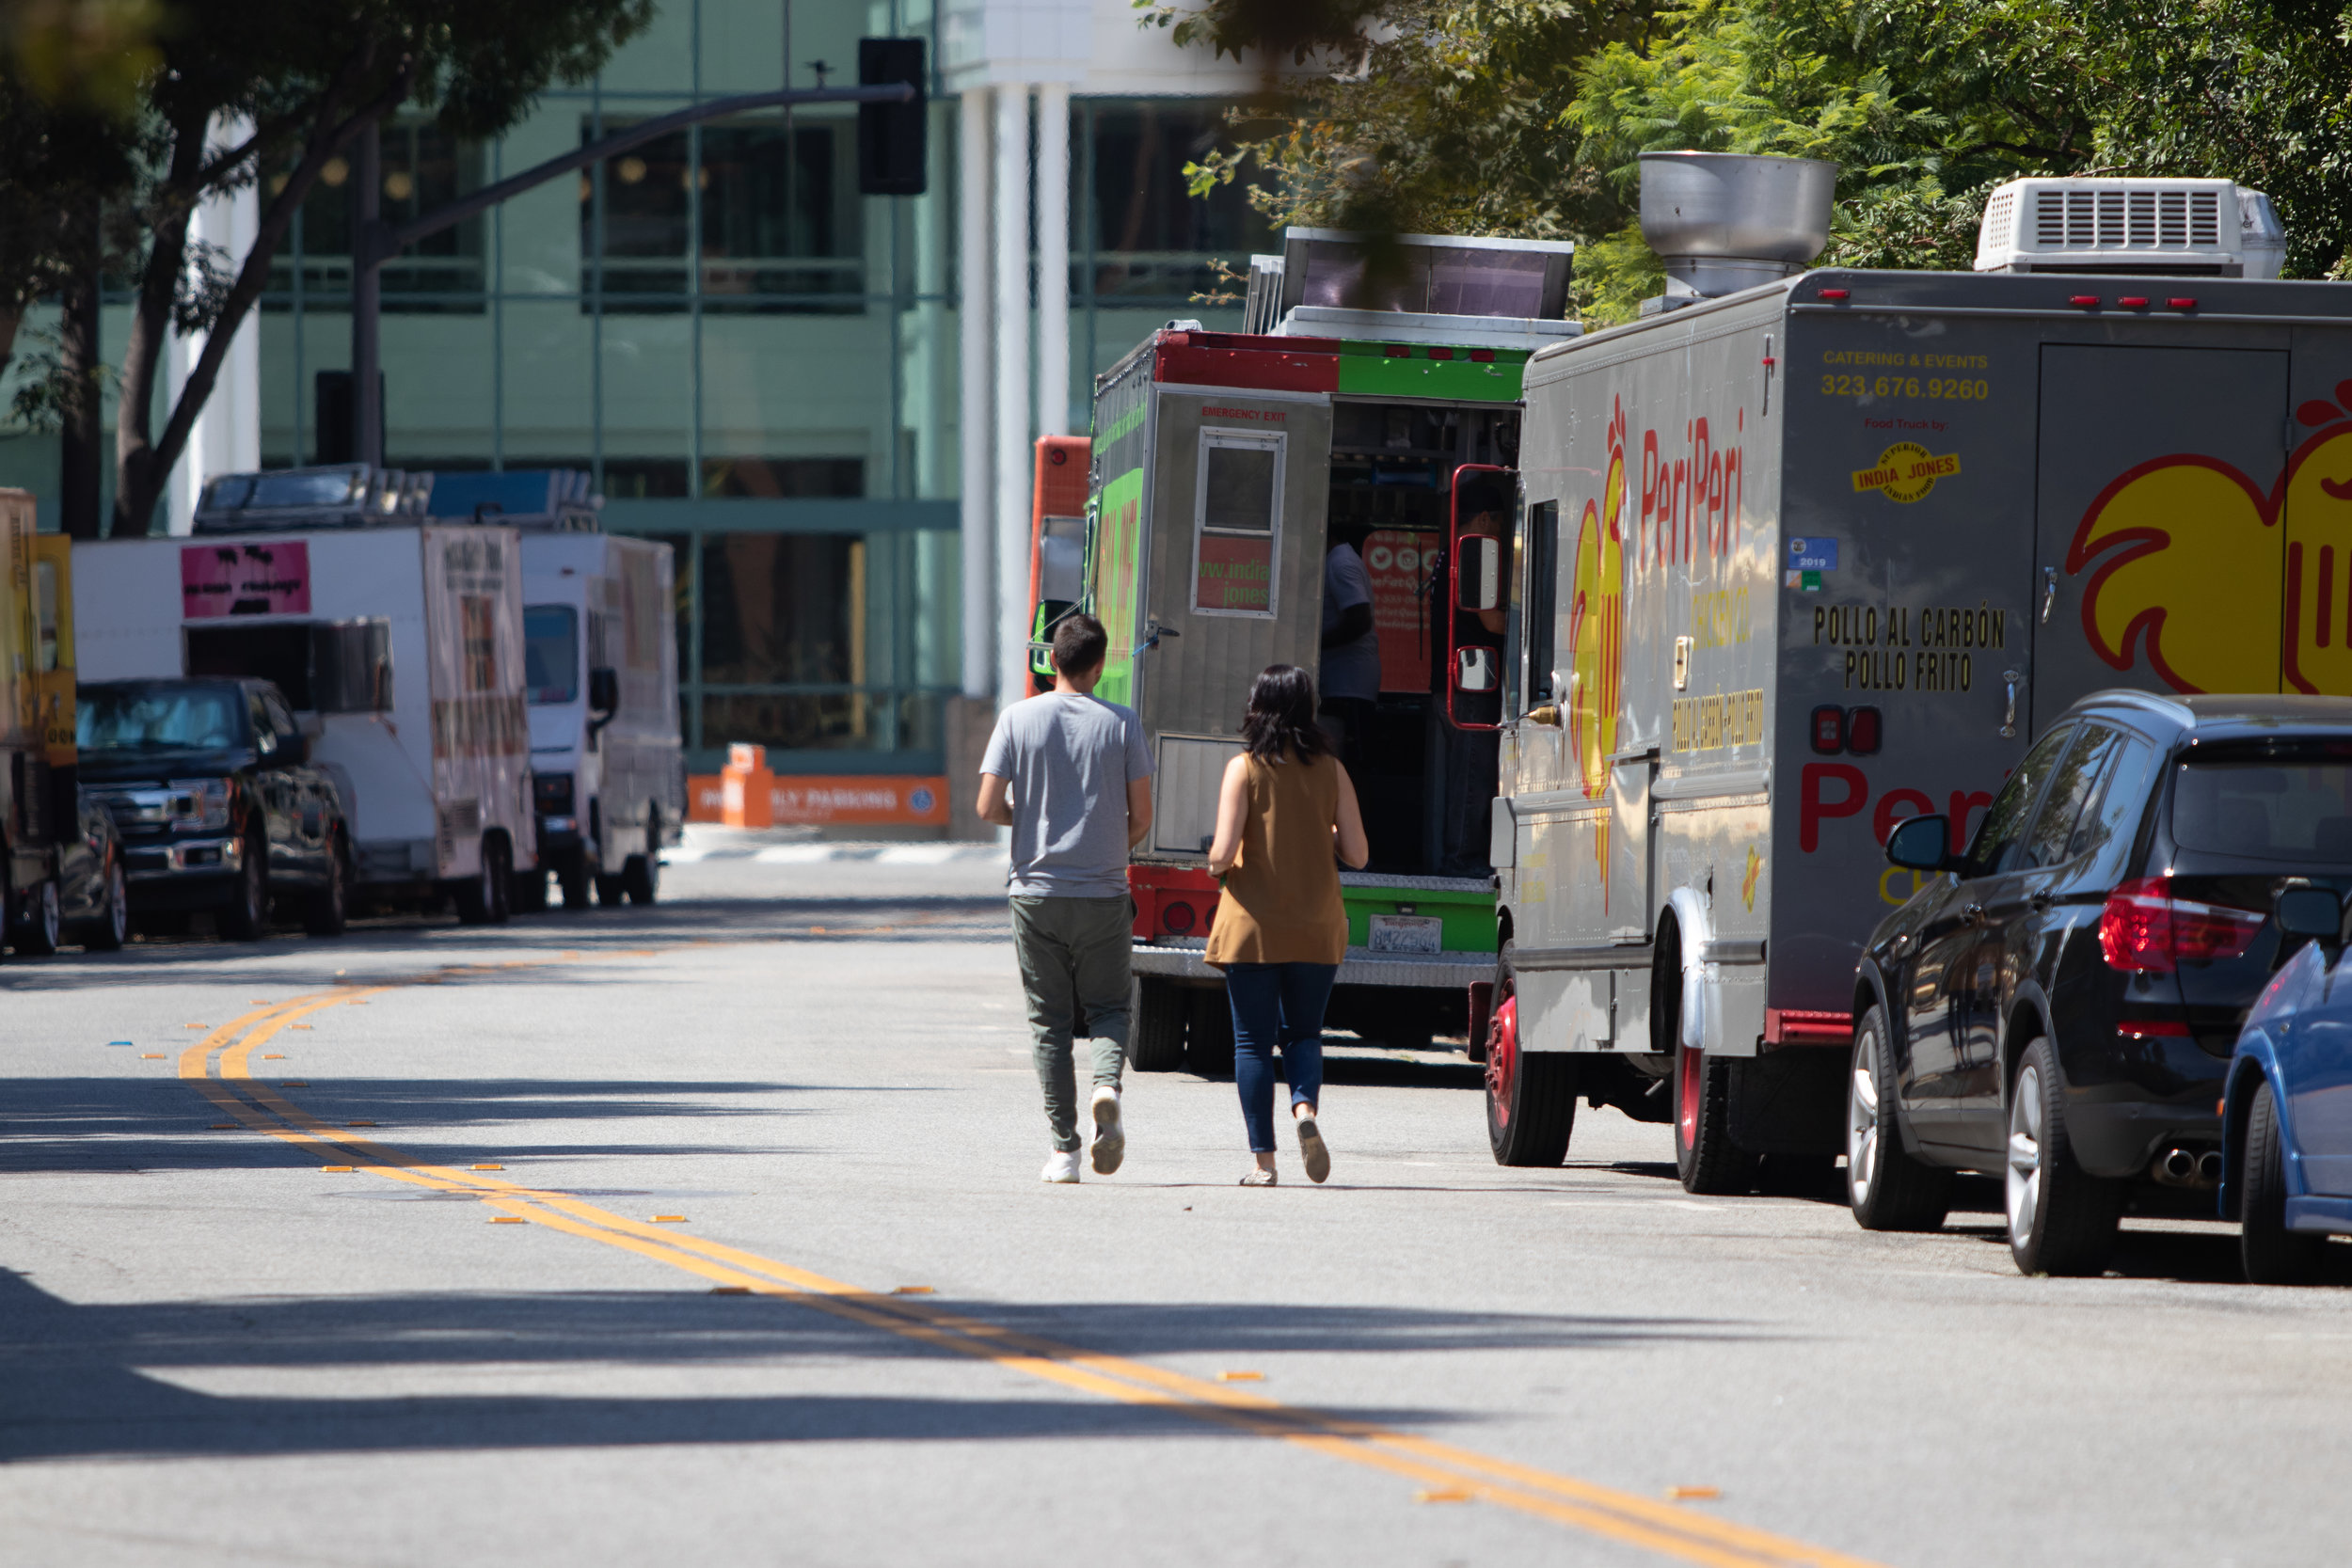 A couple walking in a car lane on the way to get food from a foodtruck. Santa Monica, California. September 5th, 2019 (Fernando Duran/The Corsair)